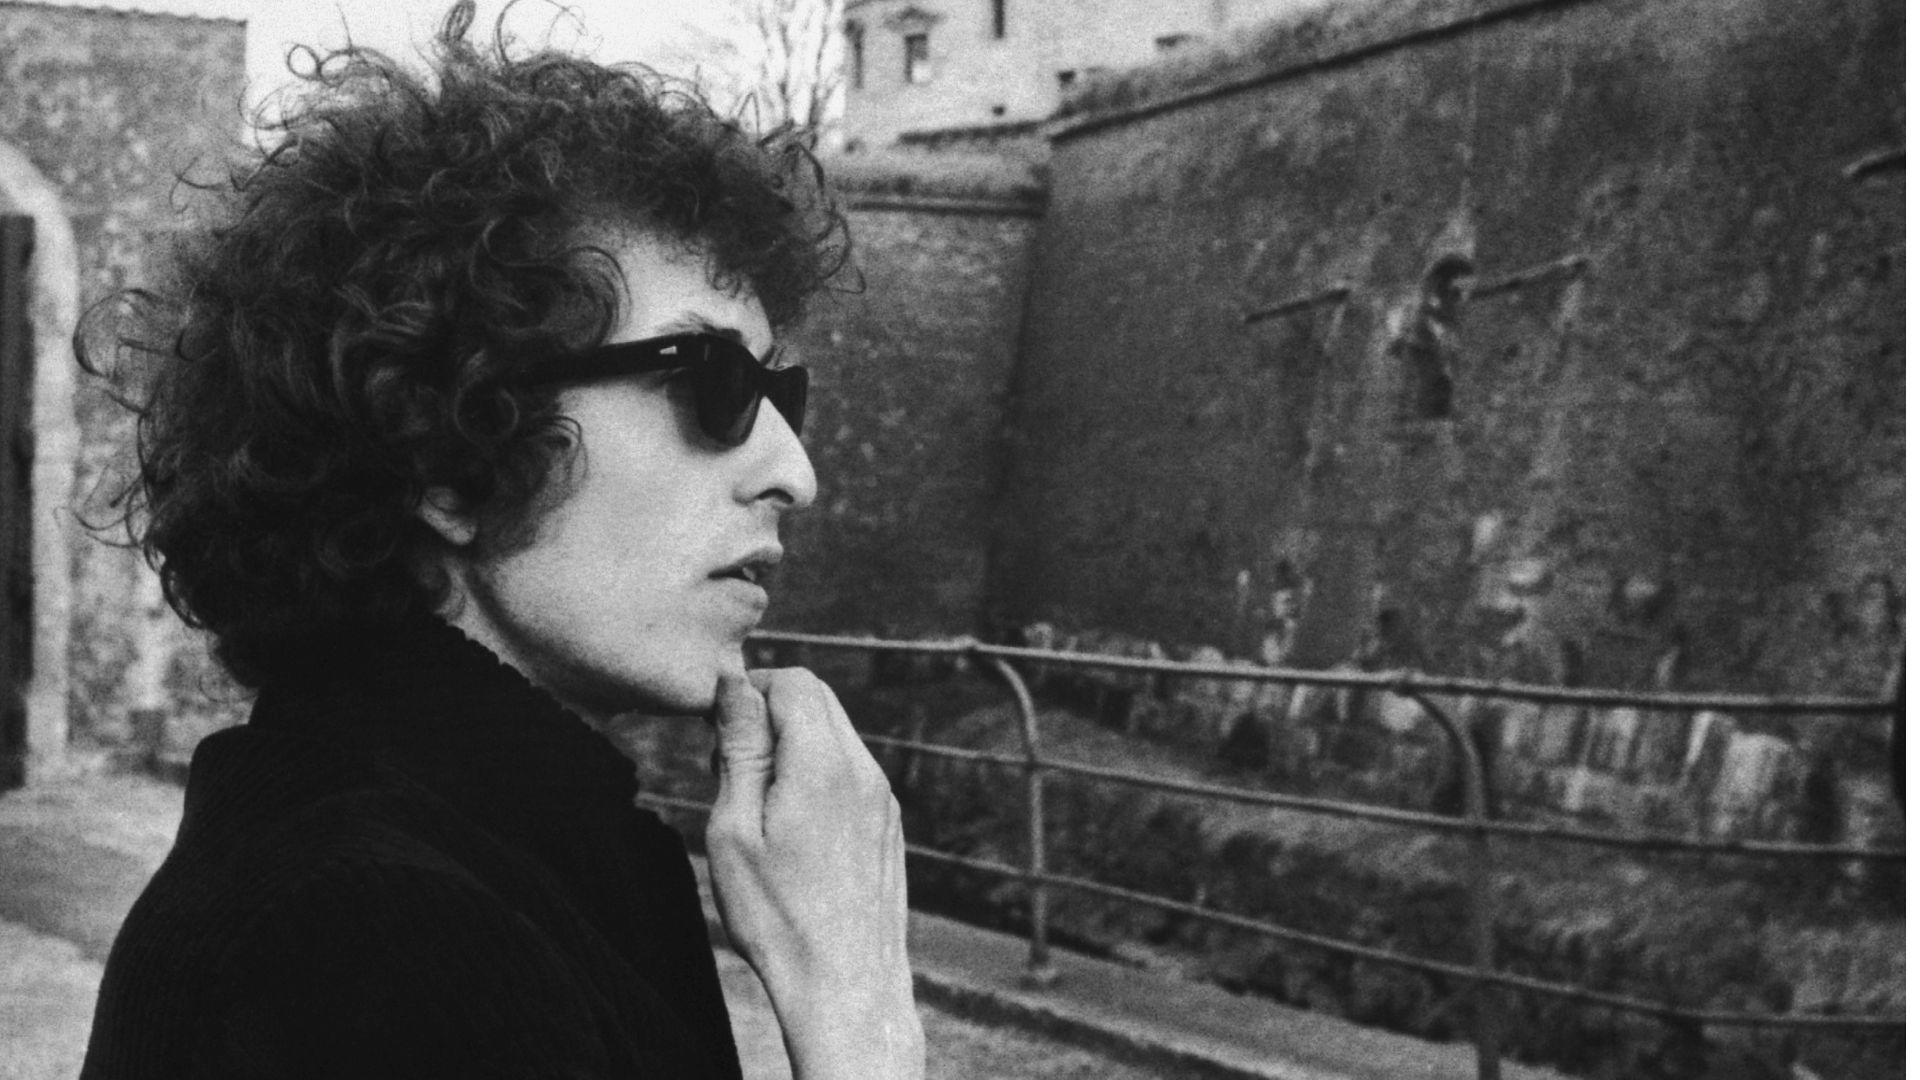 Bob Dylan contemplates Kronborg Castle, the Elsinore Castle of Shakespeare's Hamlet, shortly after arriving in Denmark to start his 1966 world tour. - Credit: Bettmann Archive/Getty Images